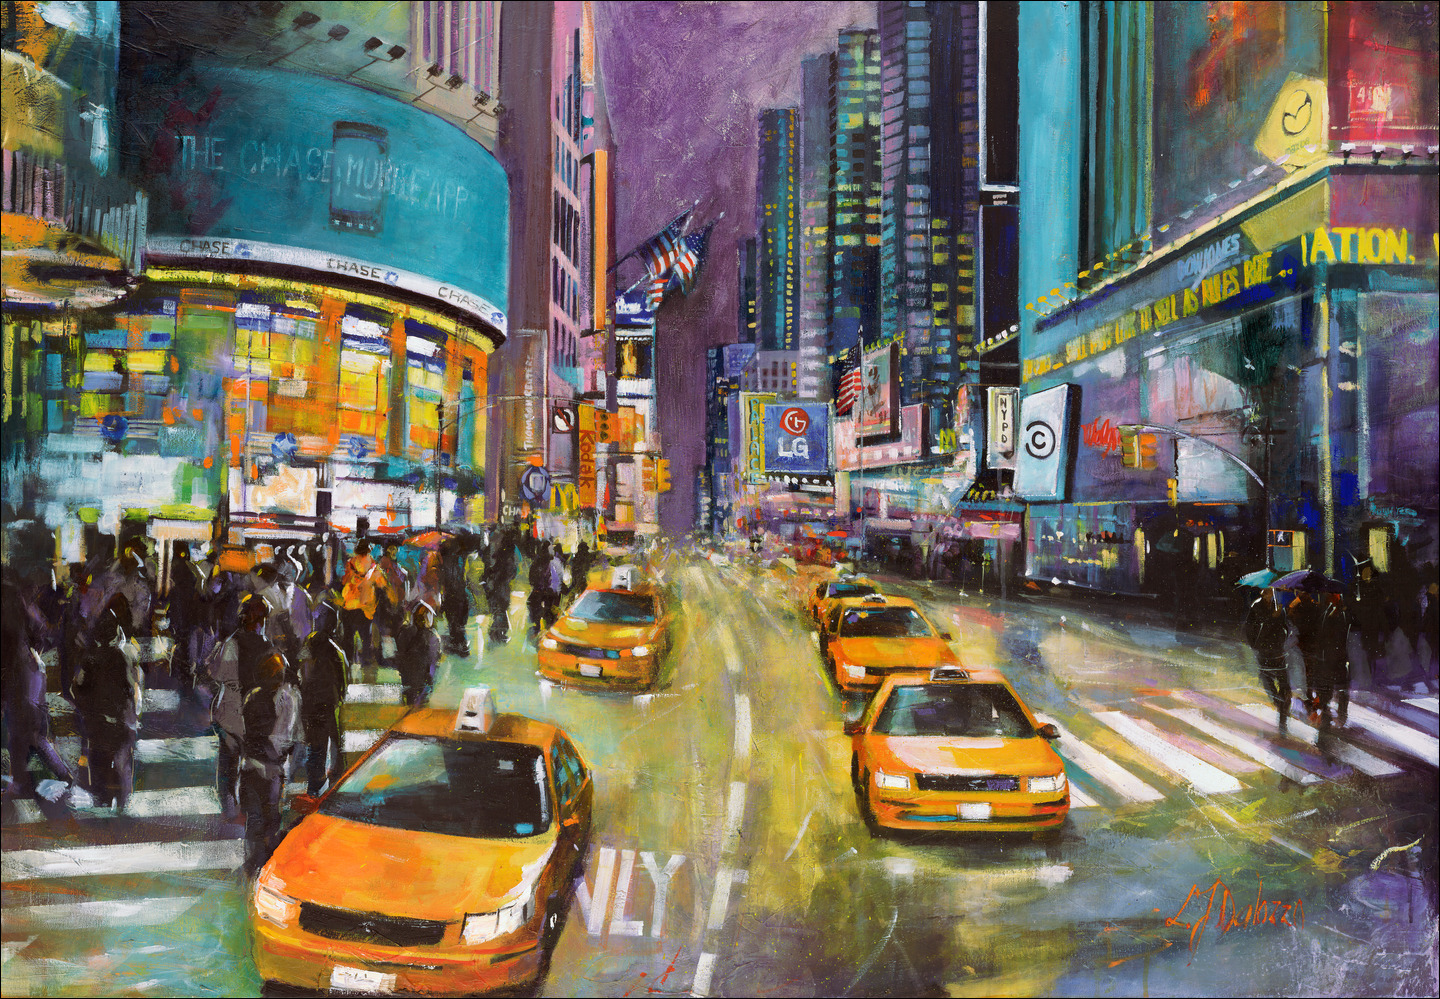 Down-5th-Ave-Time-Square-Lucette-Judith-Dalozzo